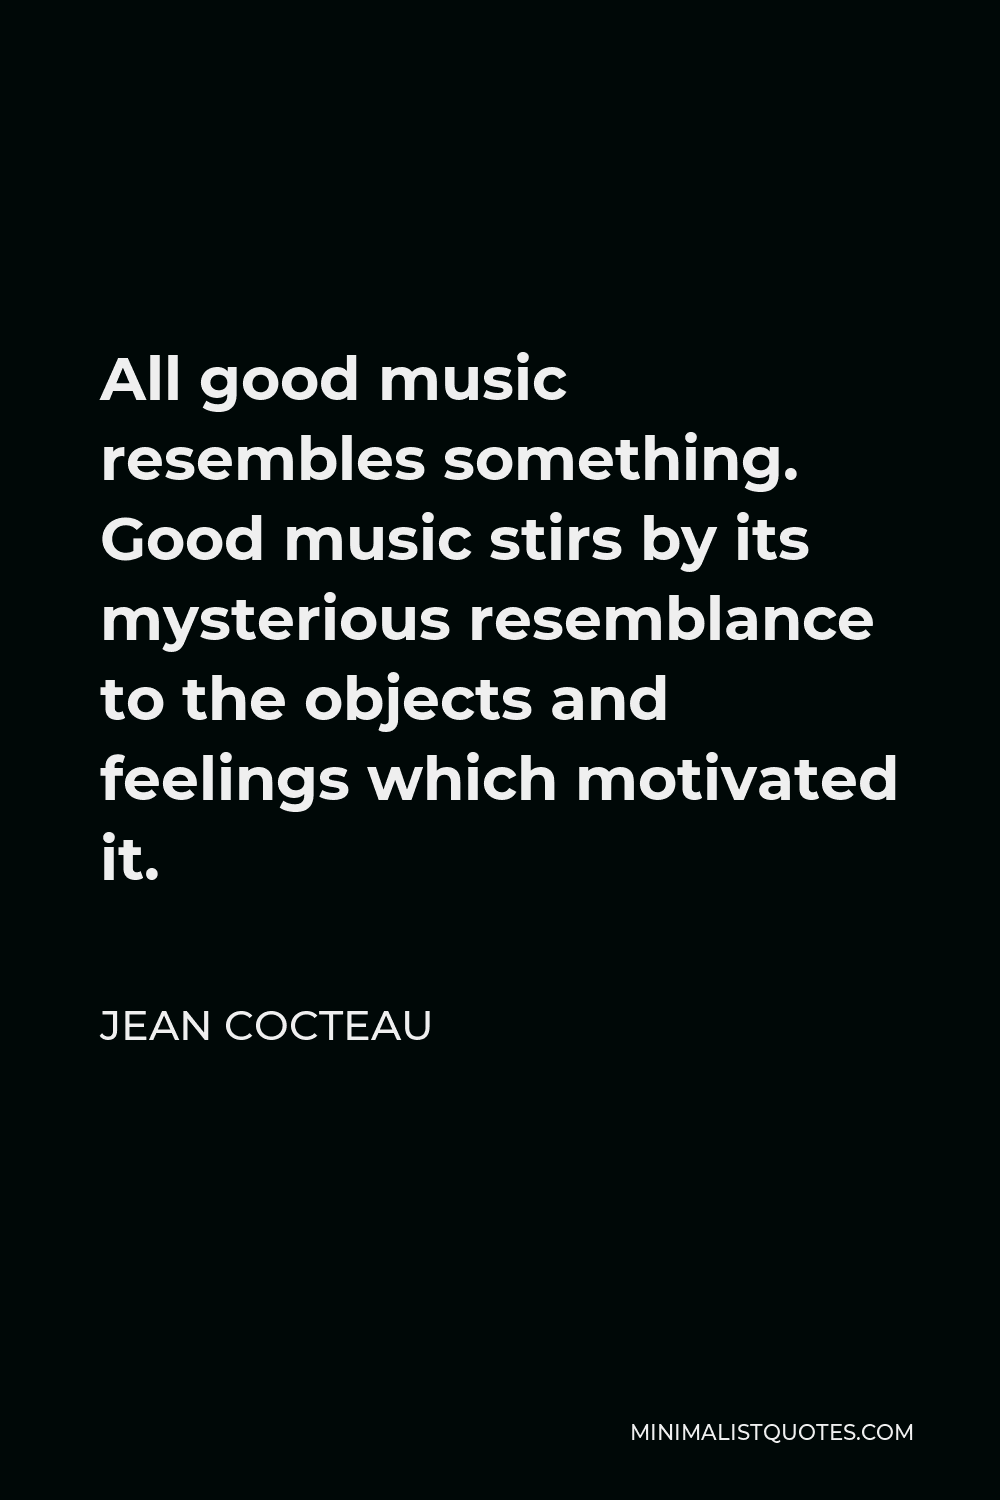 Jean Cocteau Quote - All good music resembles something. Good music stirs by its mysterious resemblance to the objects and feelings which motivated it.